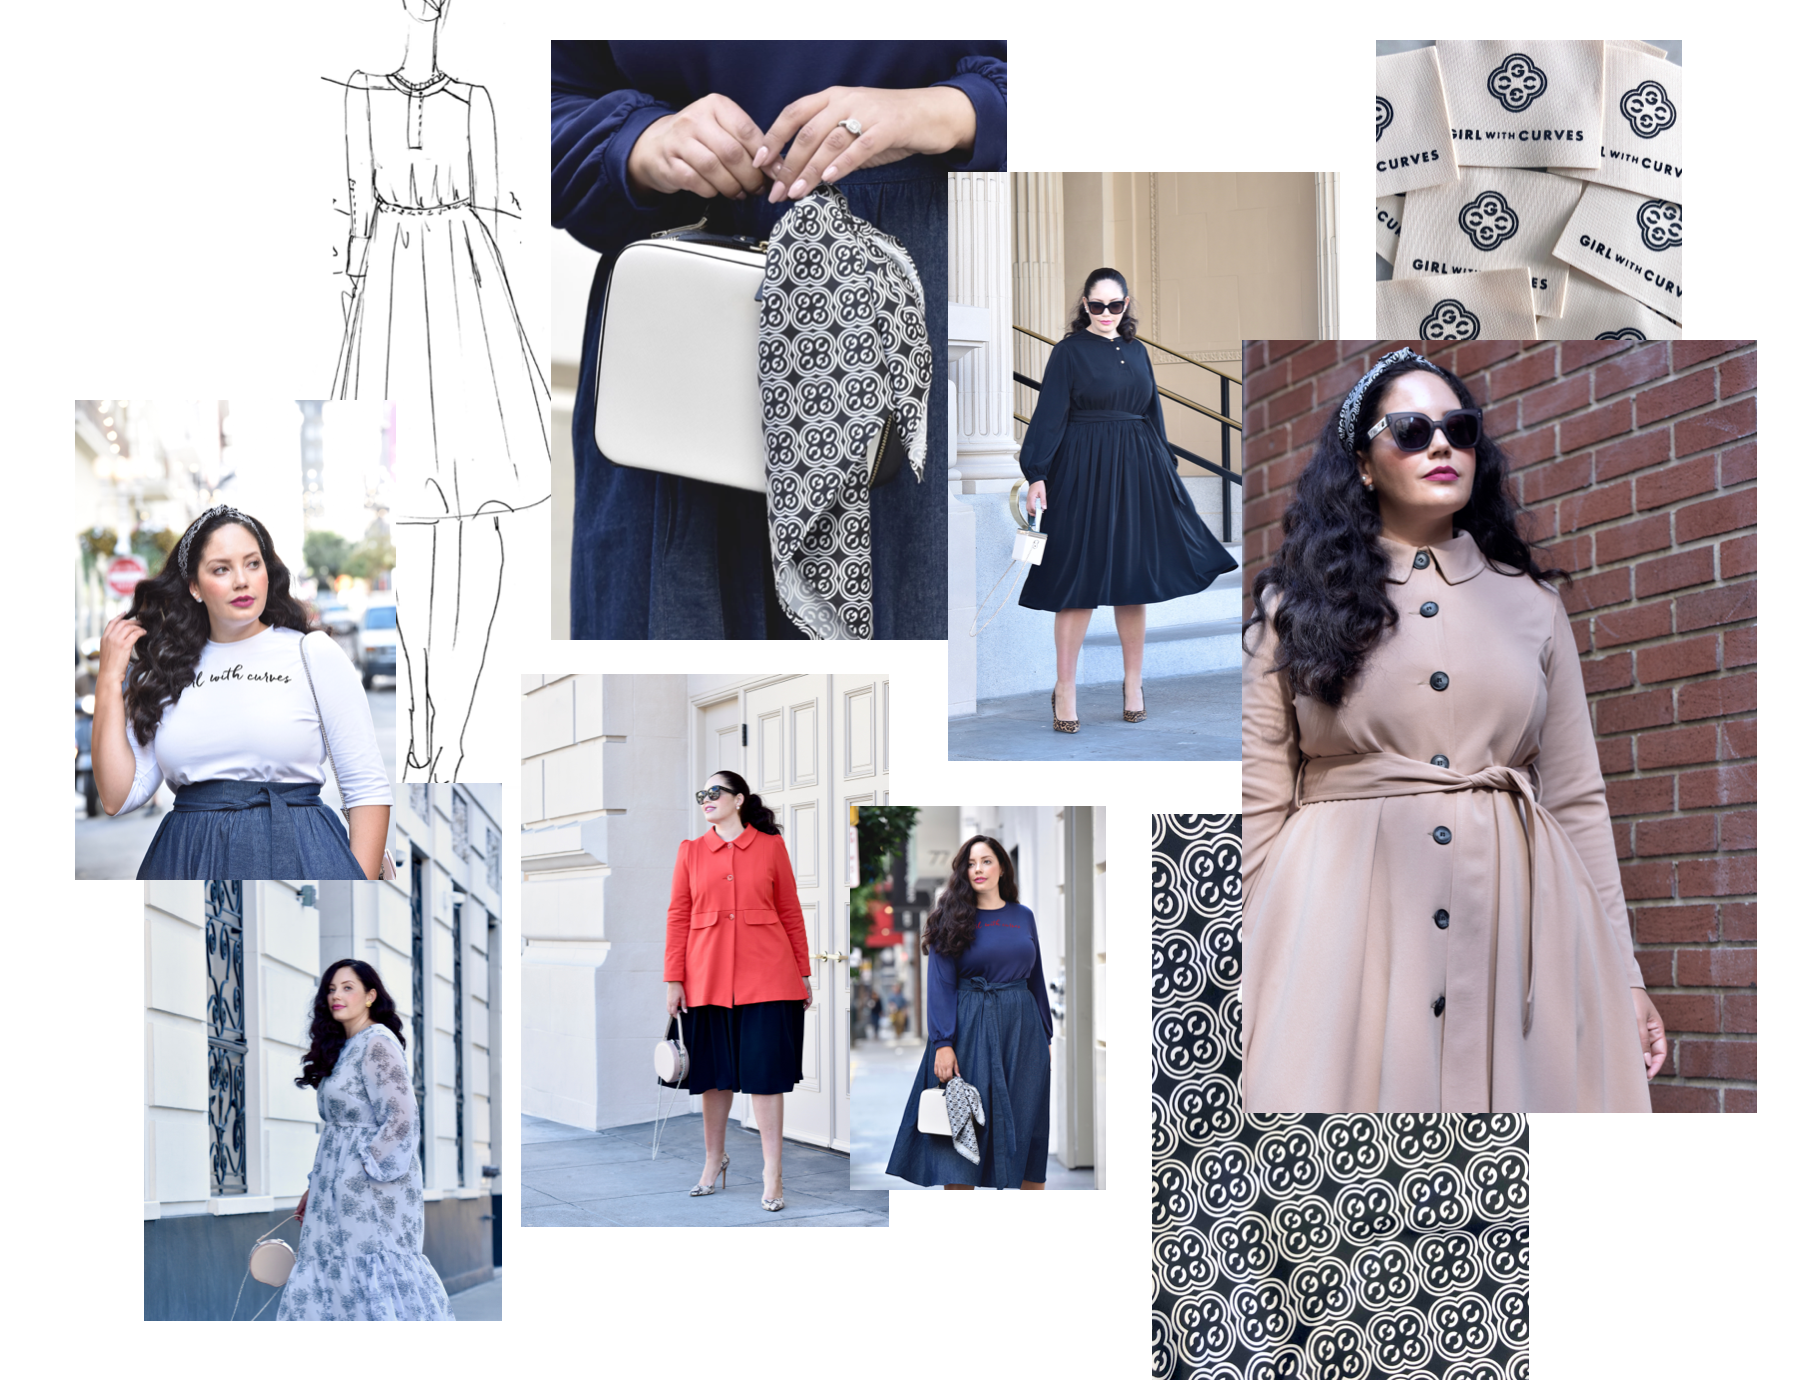 Girl With Curves Collection fall 2019 #plussize #curvy #fashion #style